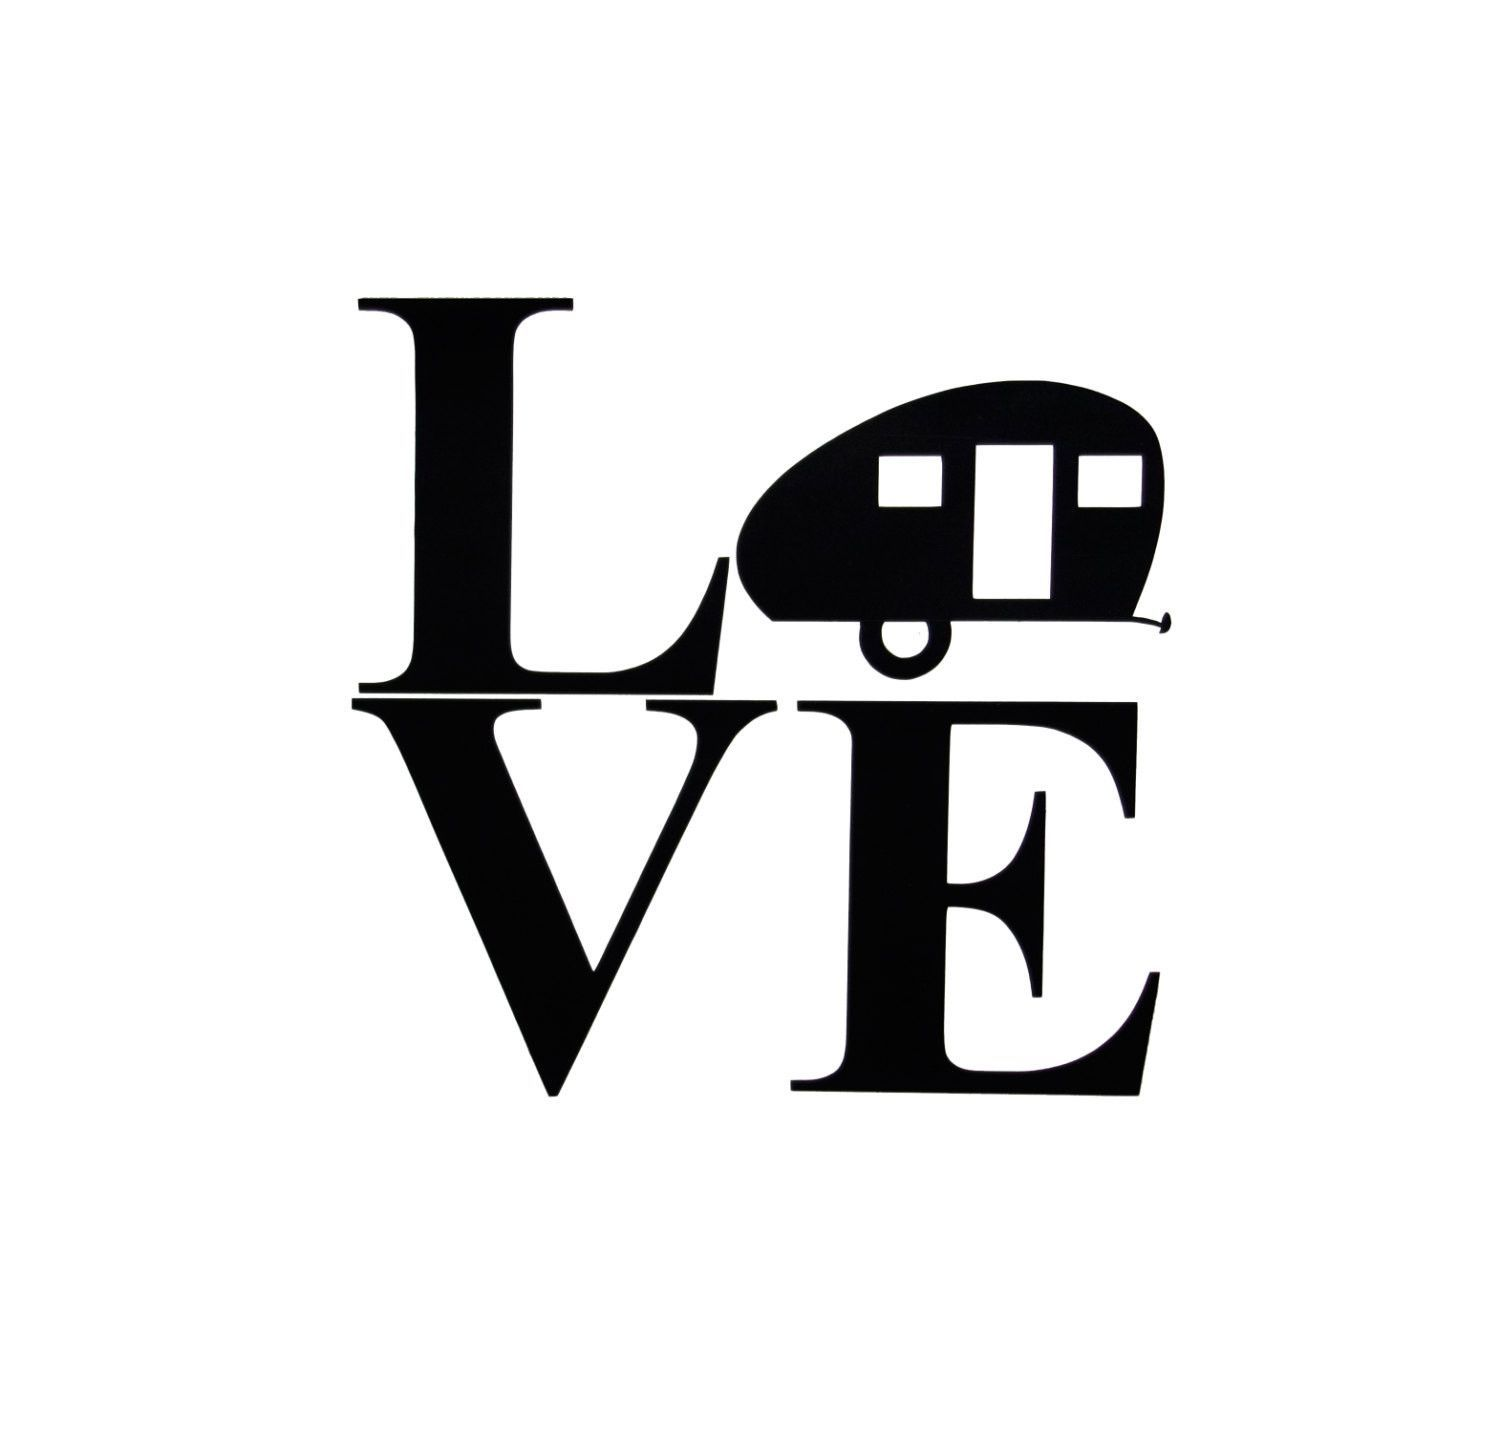 Vinyl Decal Rv Teardrop Camper Silhouette Love Rv